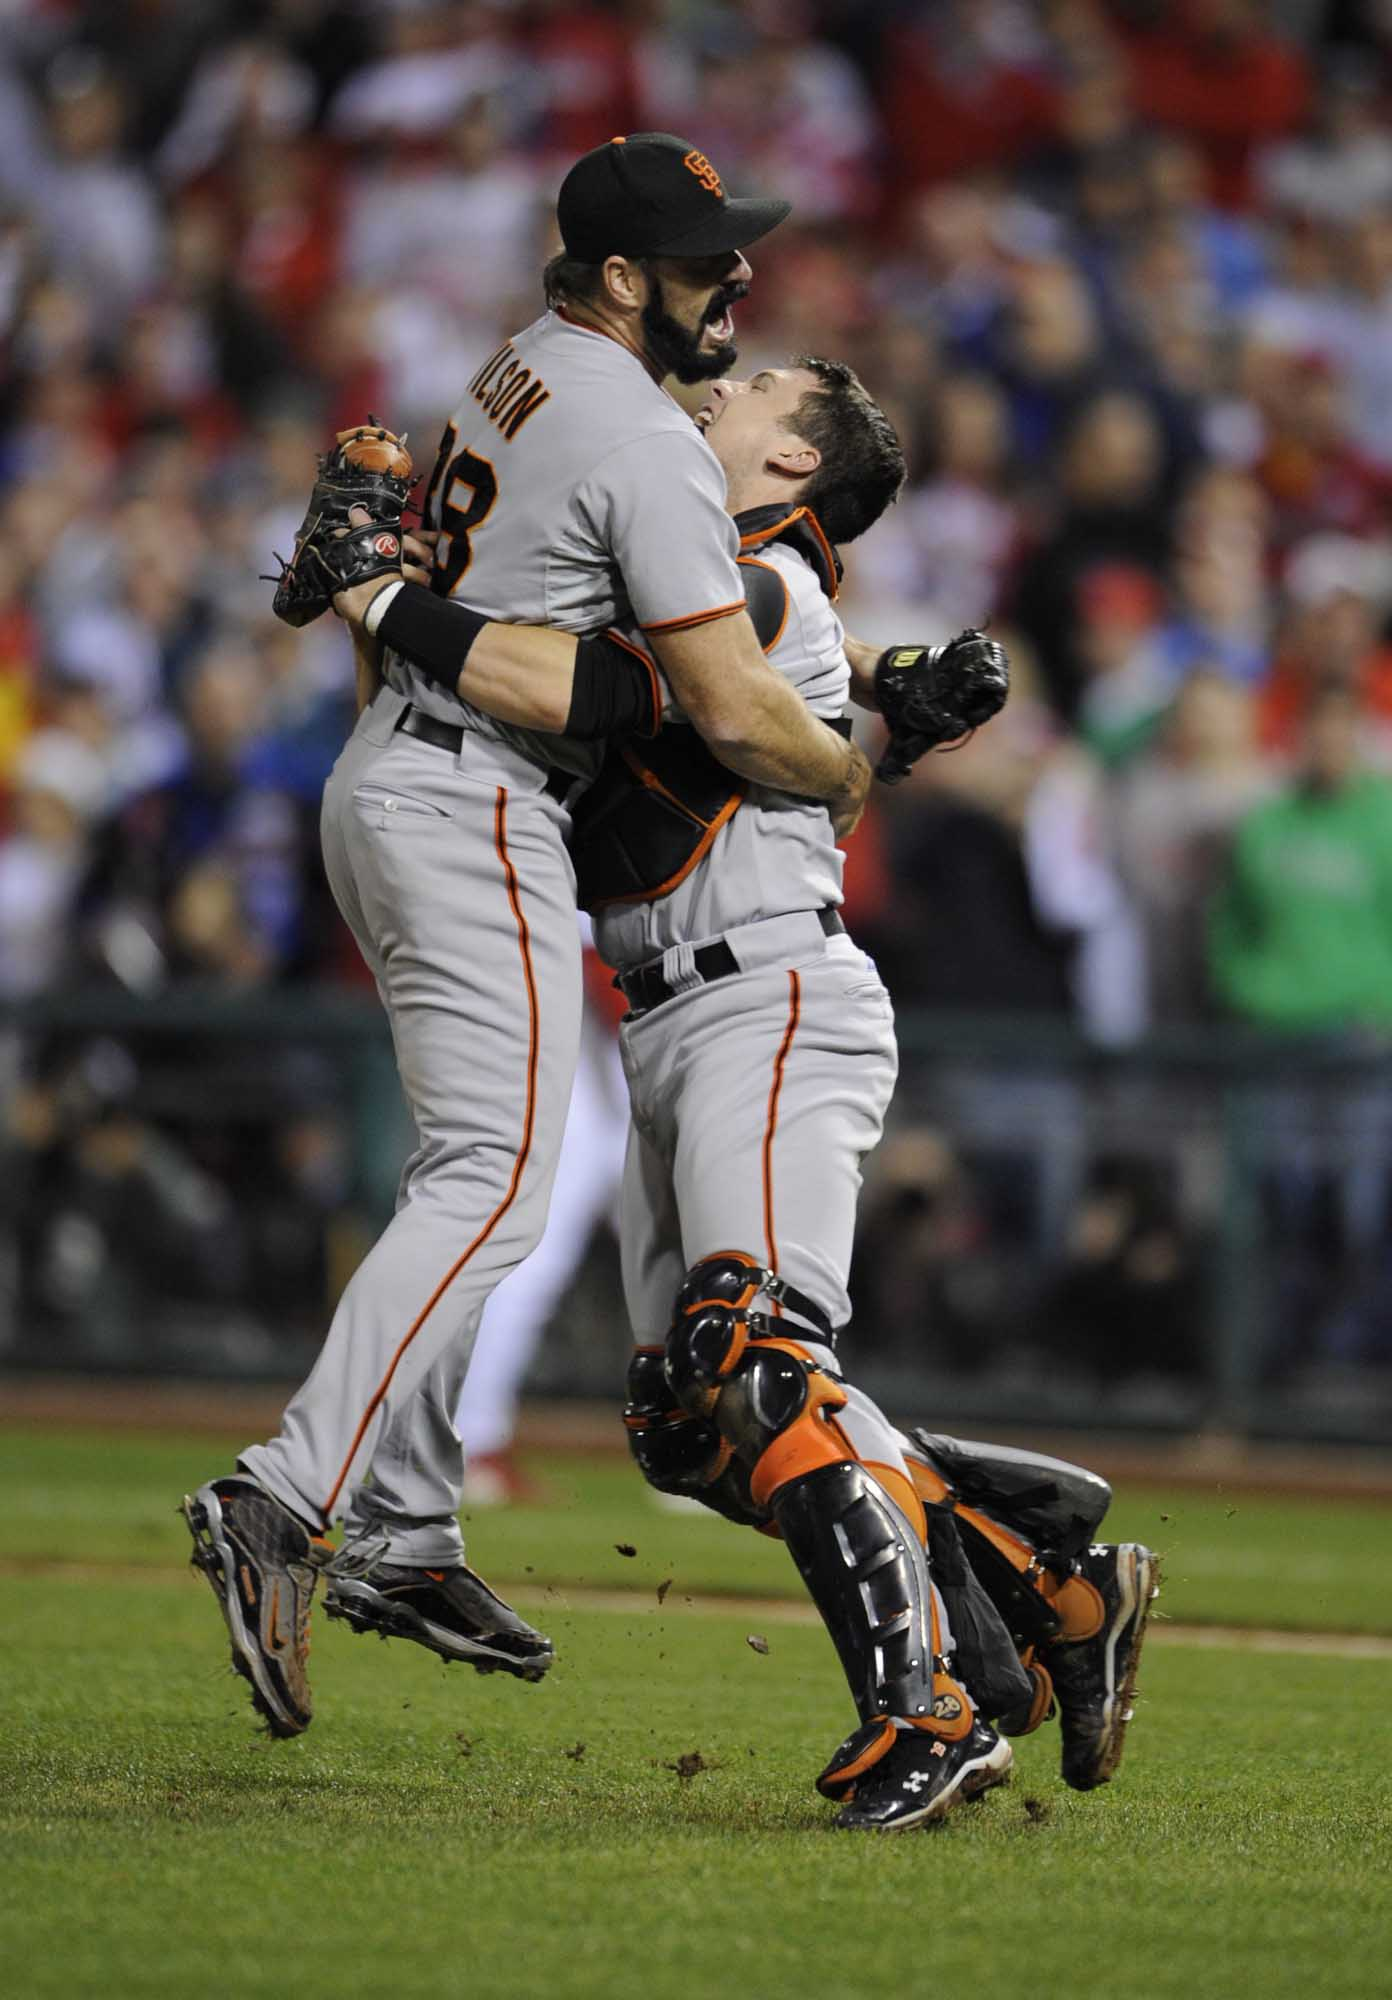 San Francisco Giants pitcher Brian Wilson and catcher Buster Posey celebrate after the Giants won  the National League pennant, 3 to 2, against the Philadelphia Phillies on October 23, 2010 at Citizens Bank Park.